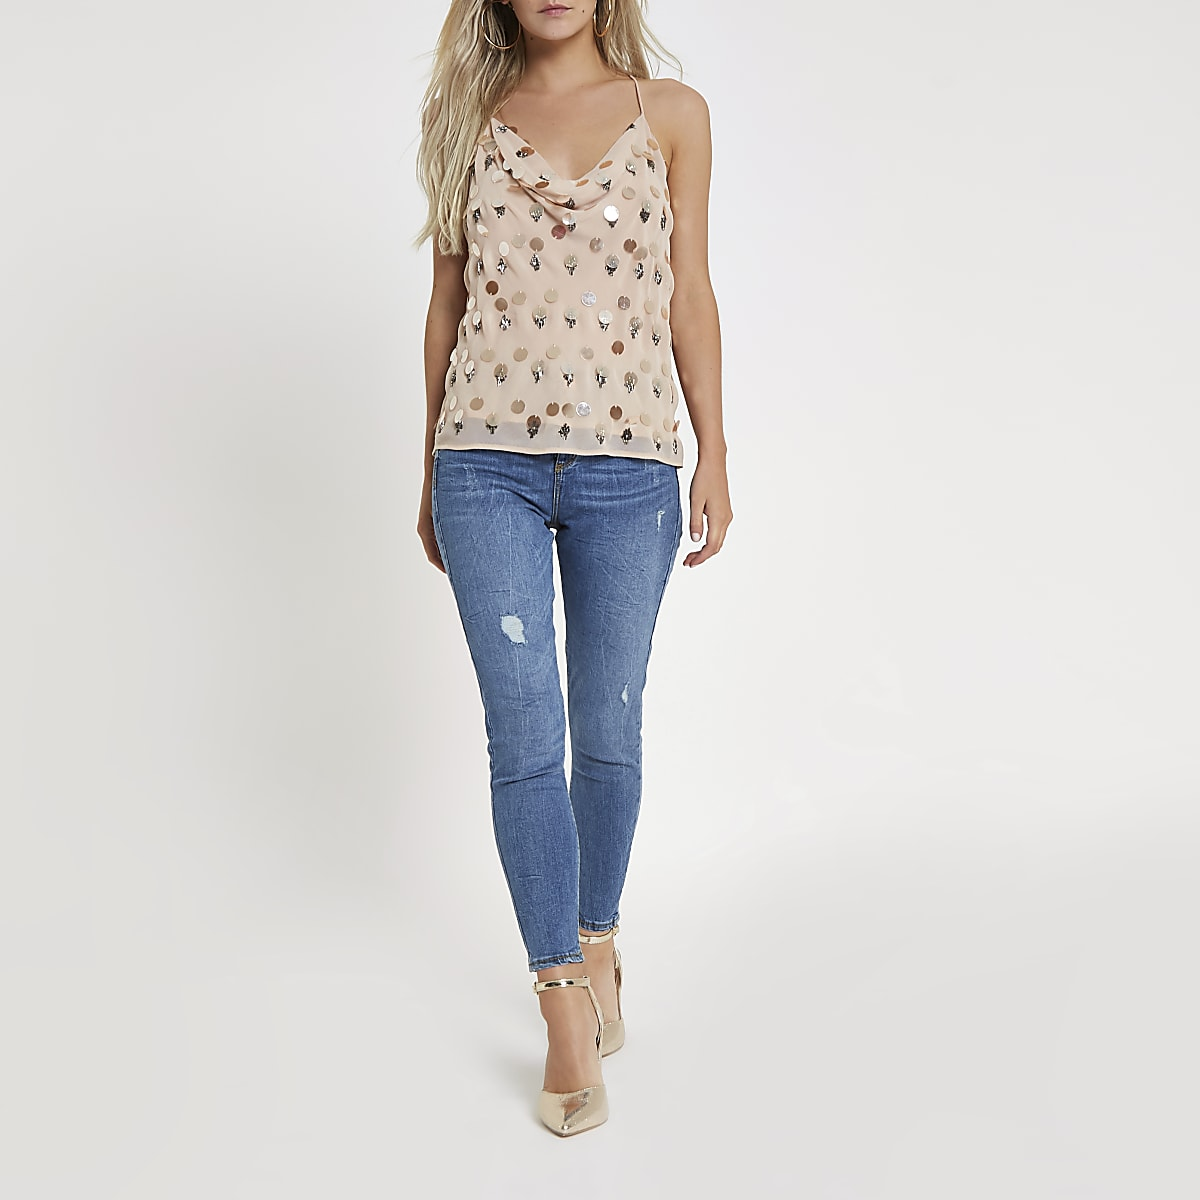 Petite pink sequin and bead embellished cami